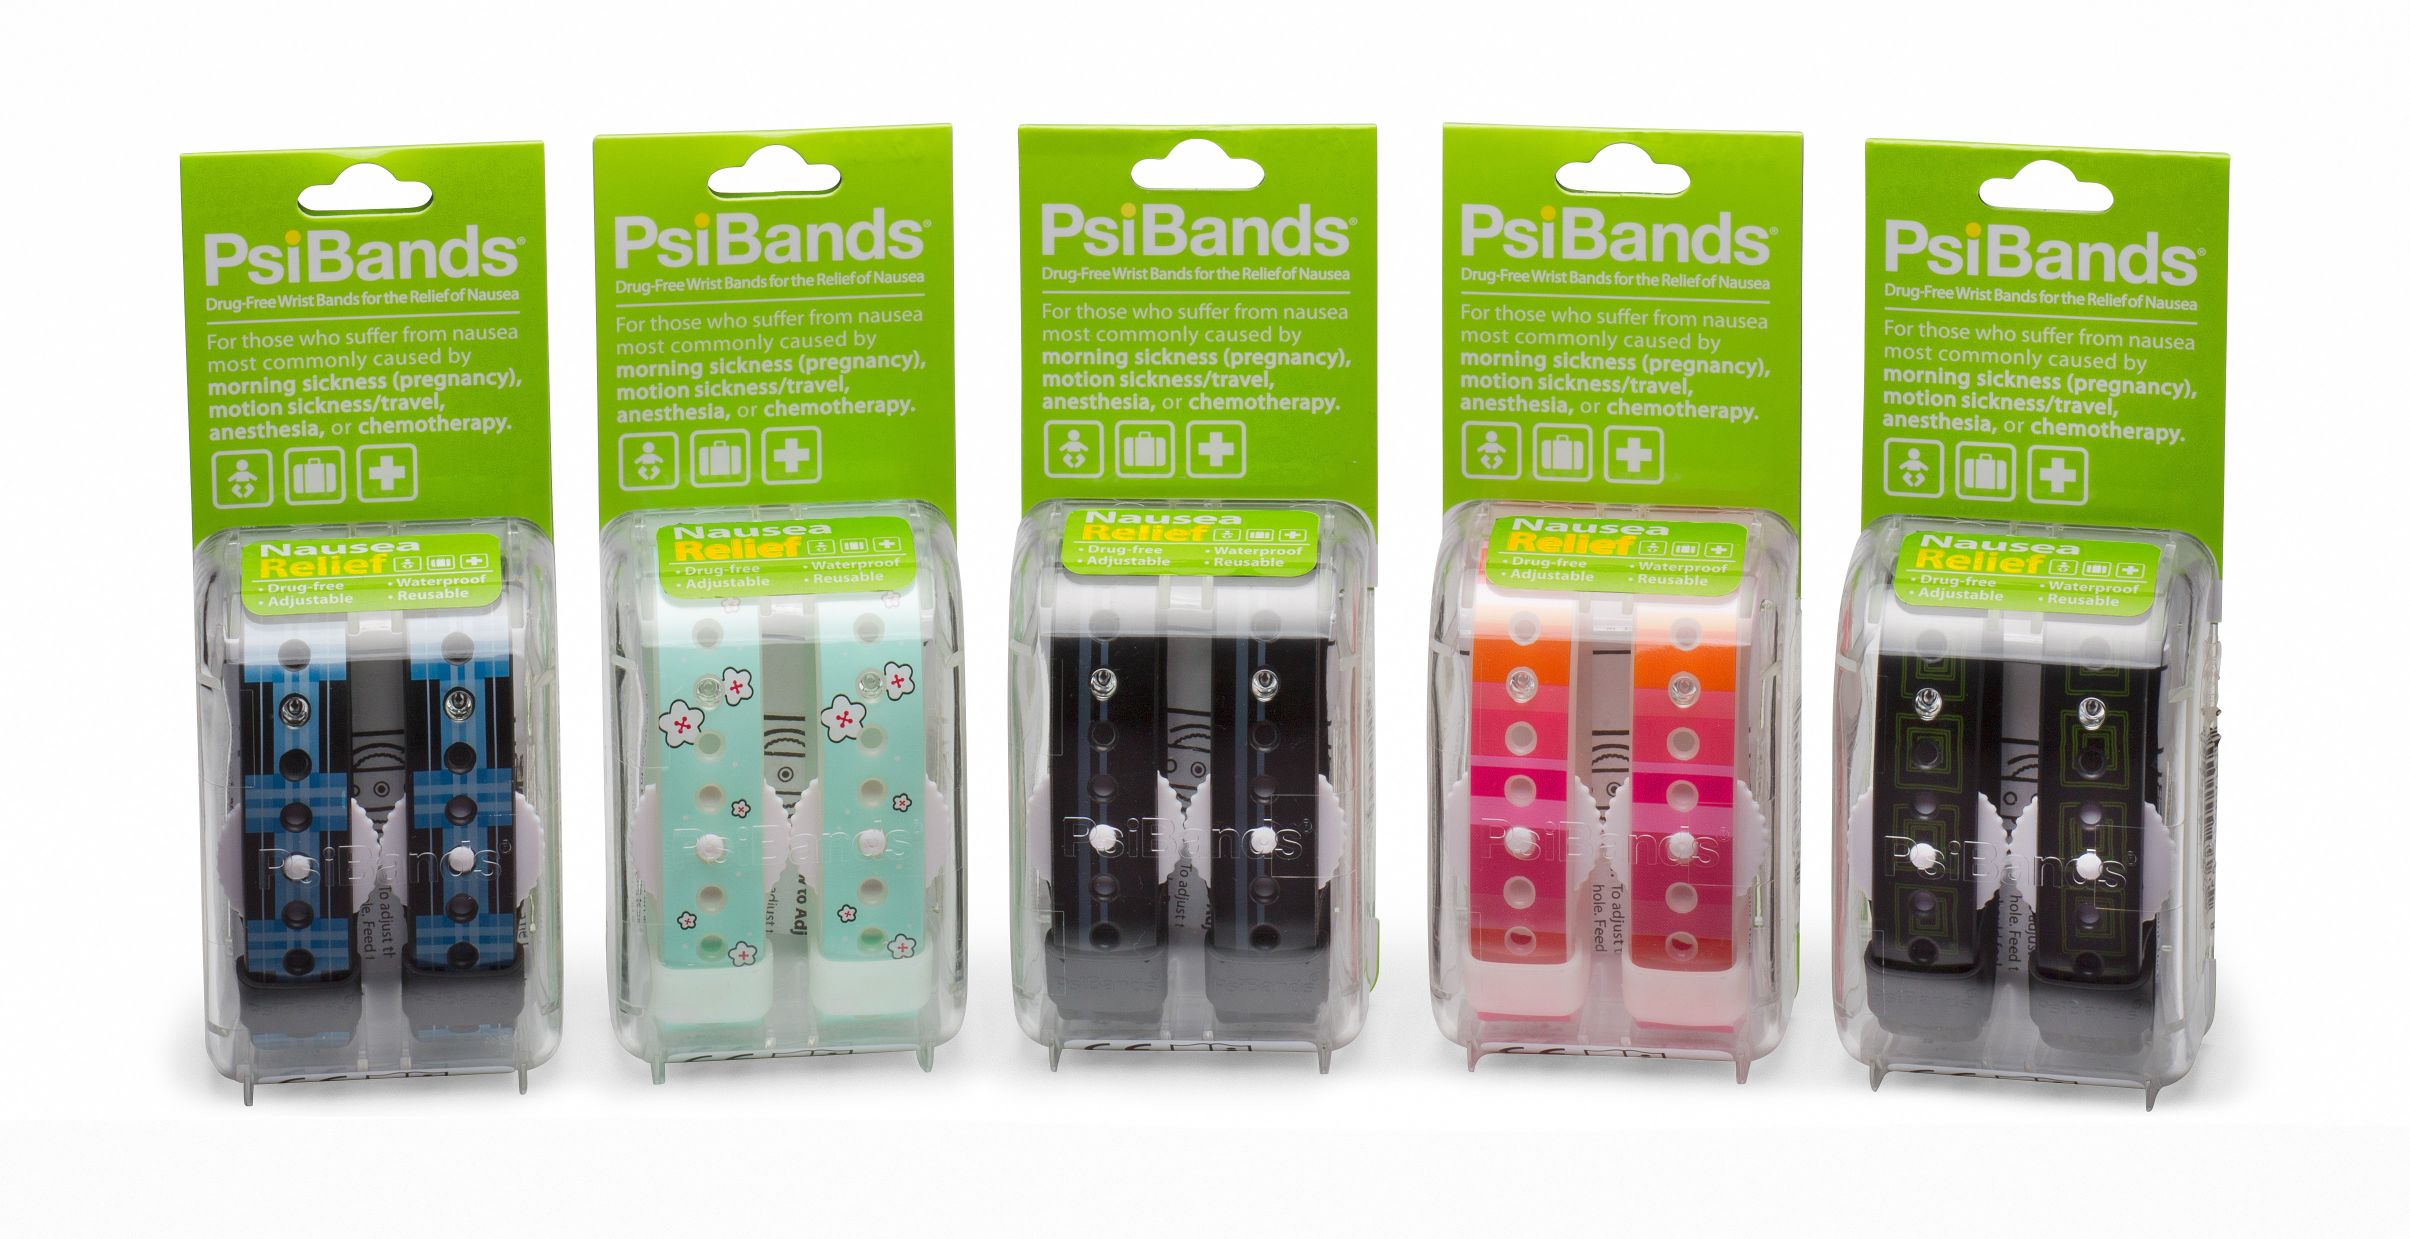 Psi Bands in a Pack